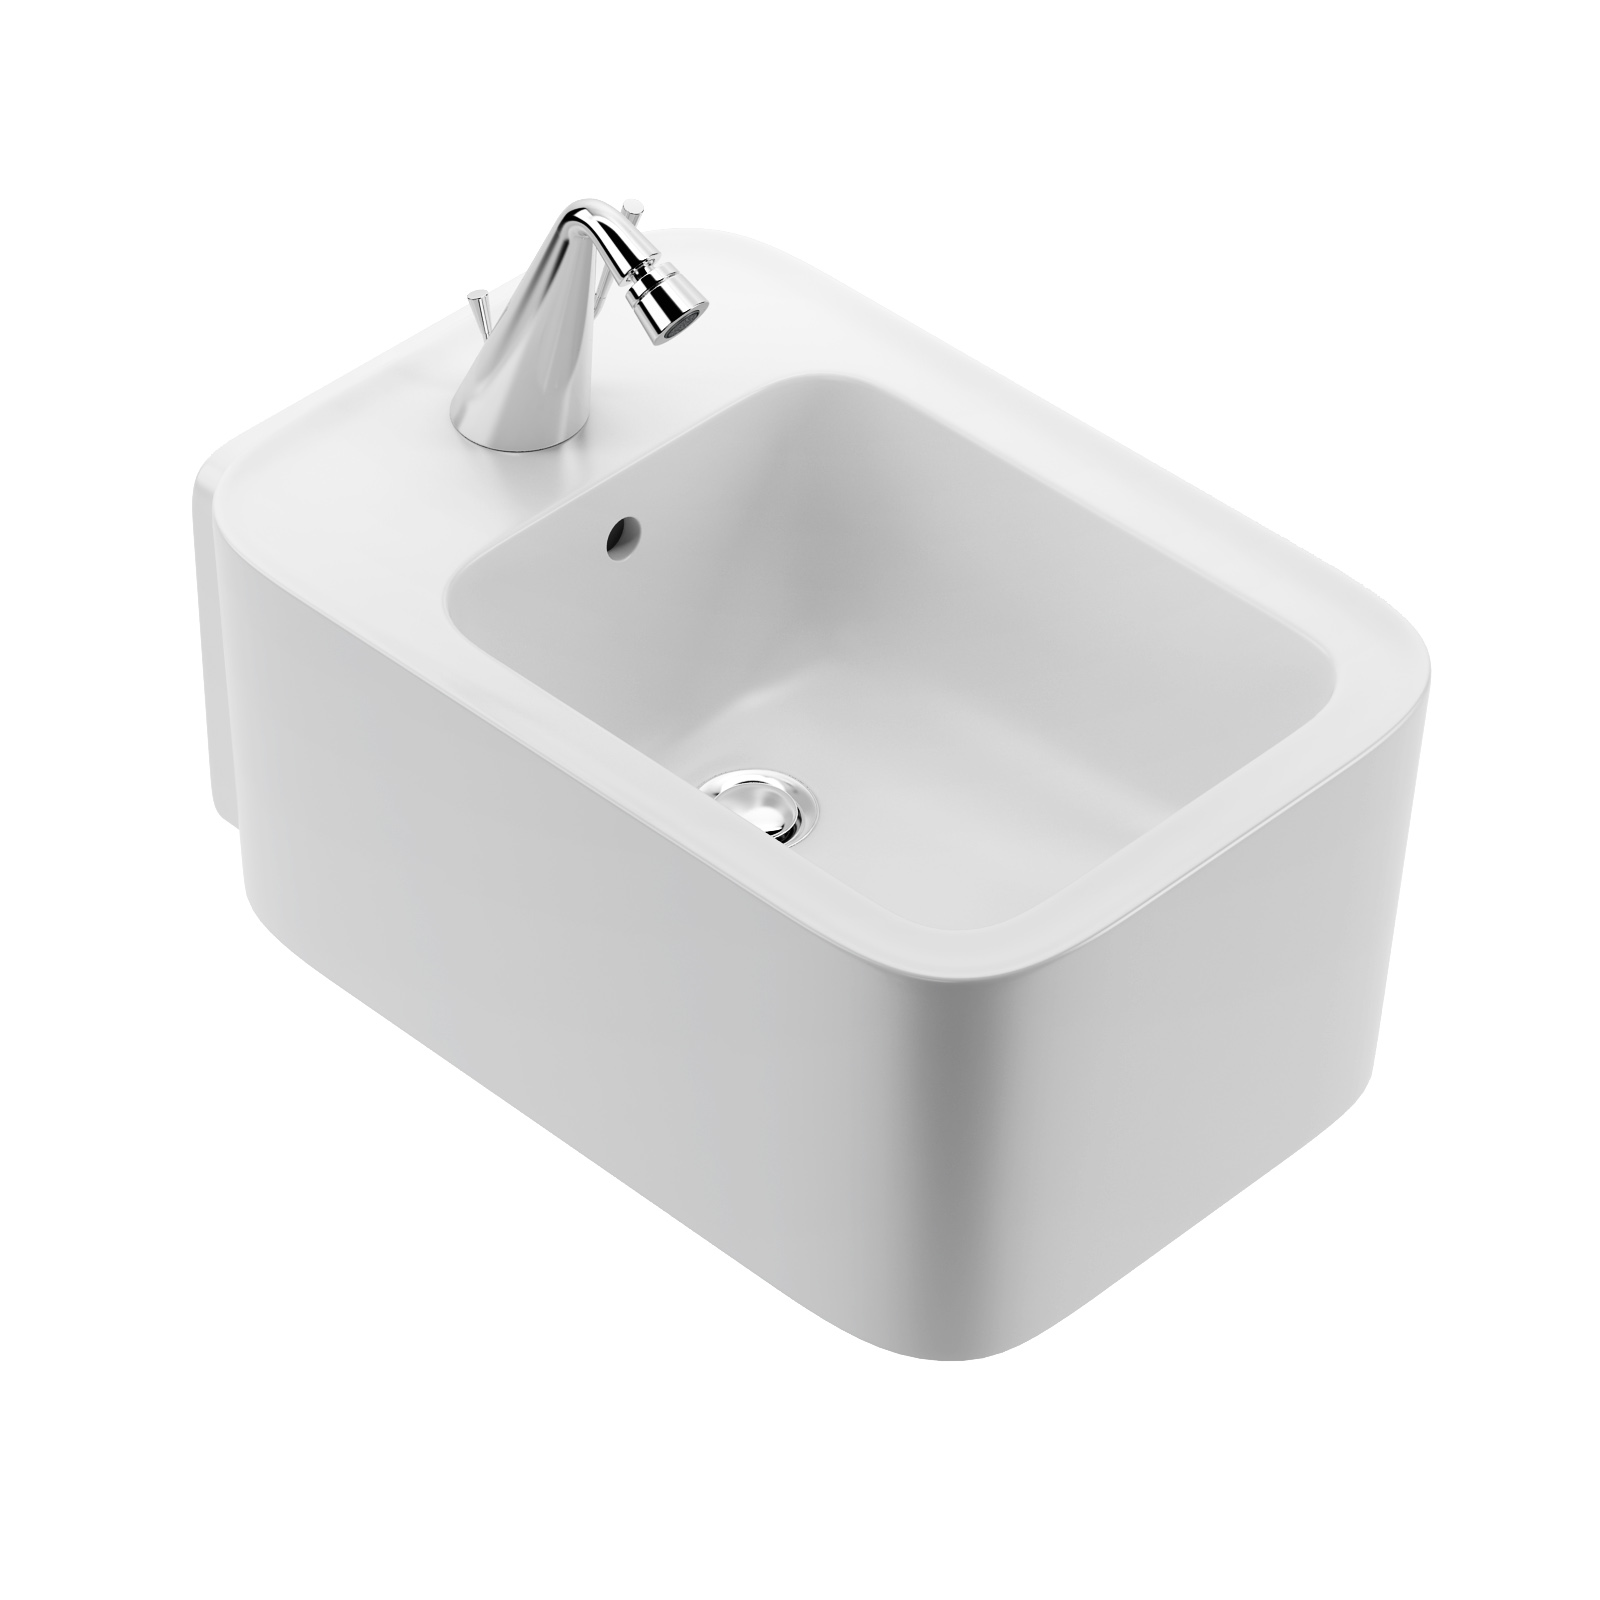 Cameo Wall-hung Bidet by Valdama